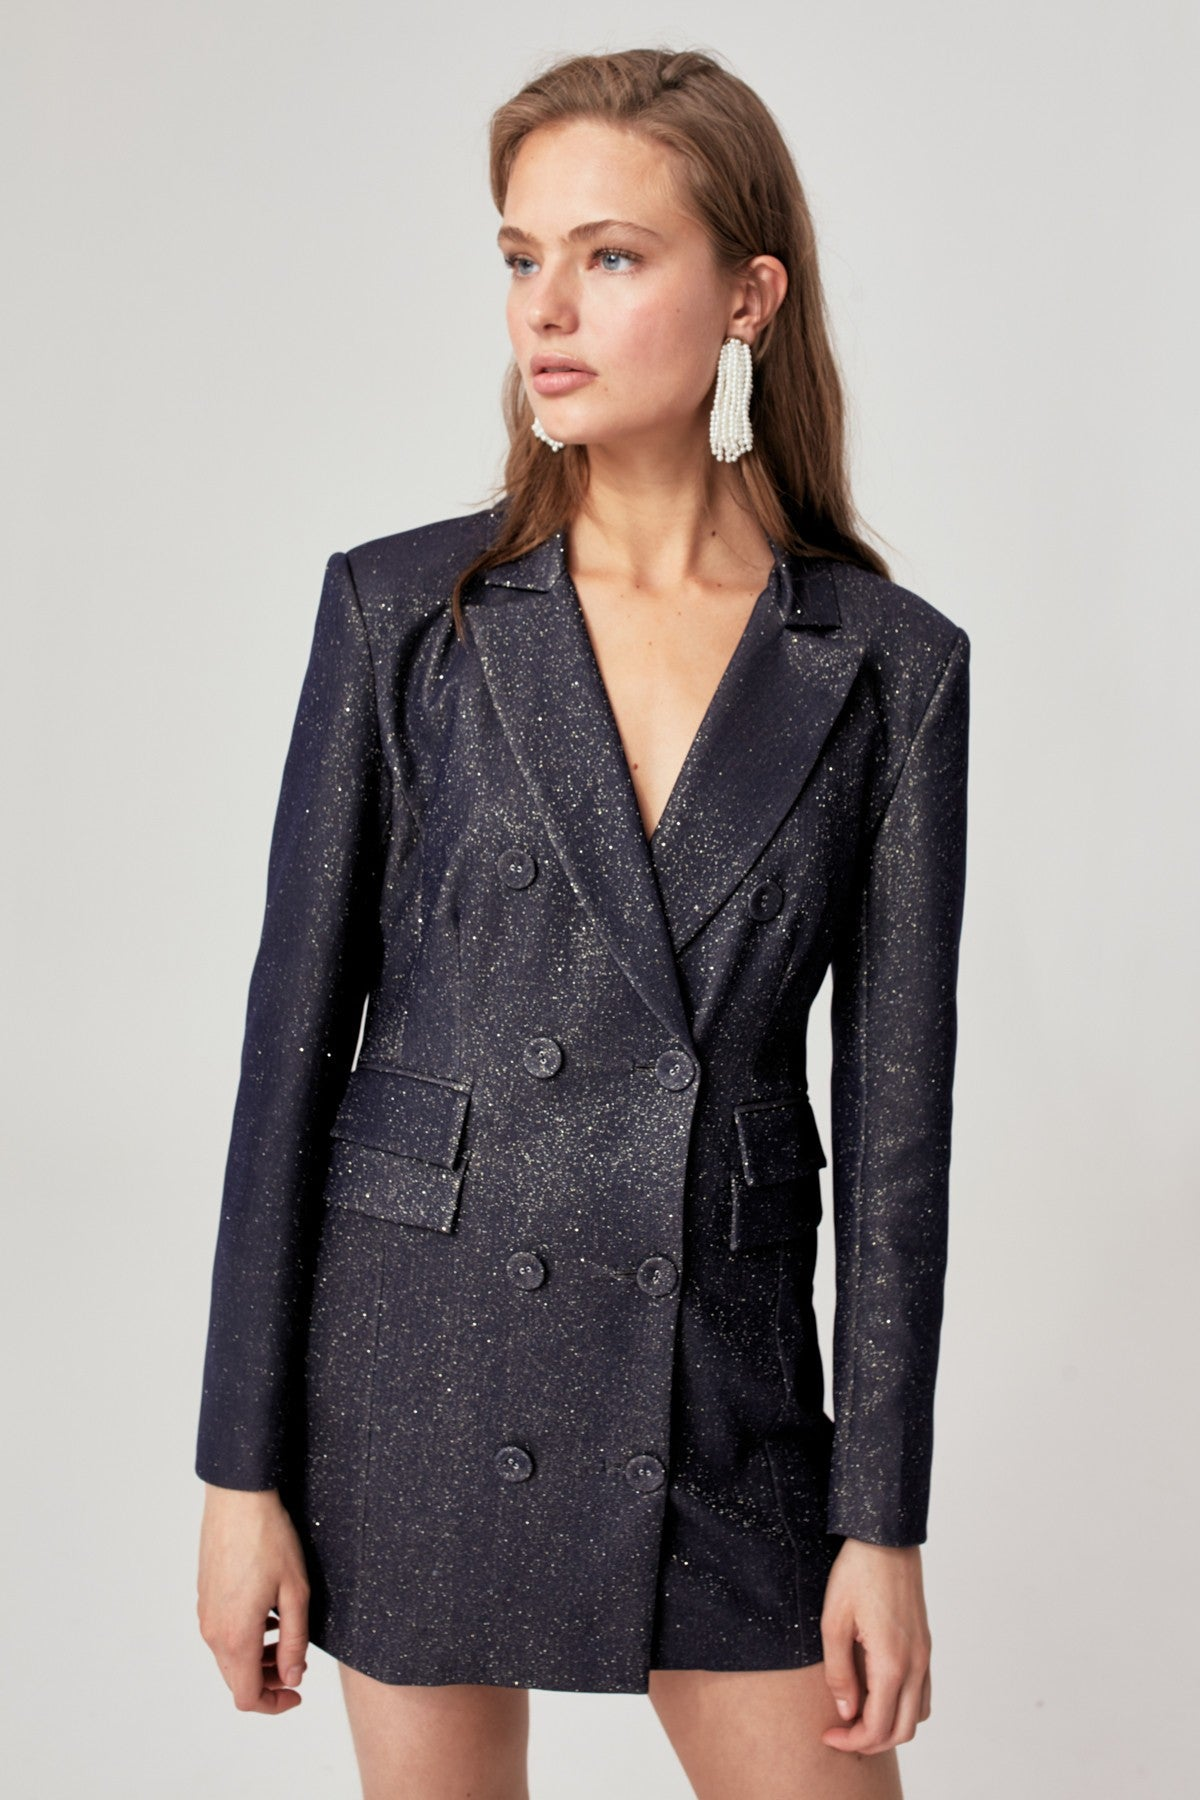 BY NIGHT BLAZER navy metallic